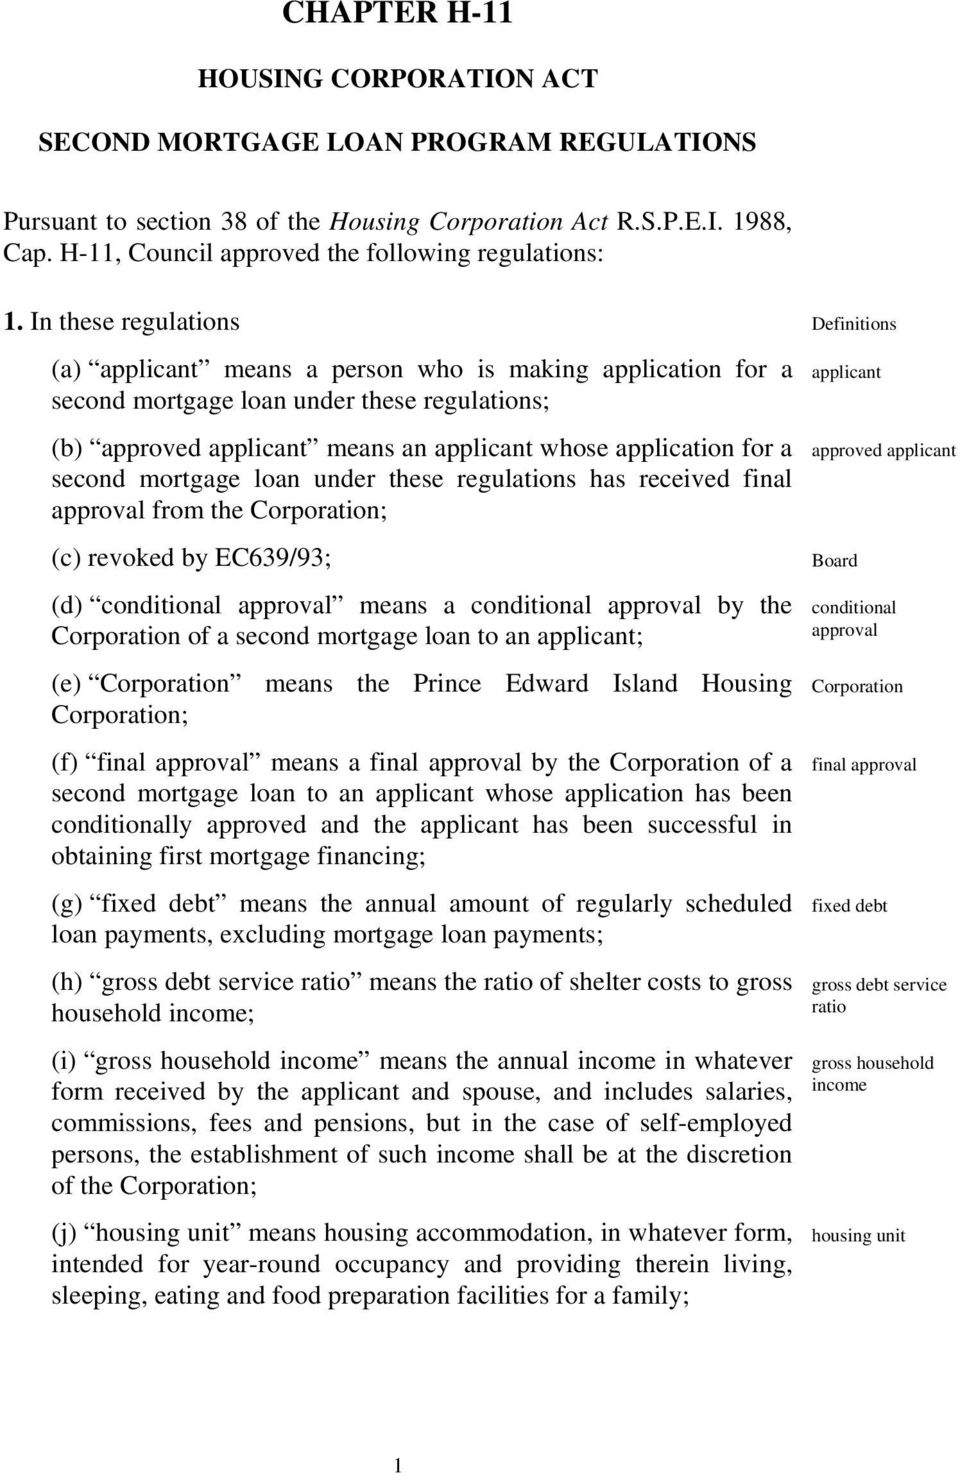 In these regulations Definitions (a) applicant means a person who is making application for a second mortgage loan under these regulations; (b) approved applicant means an applicant whose application